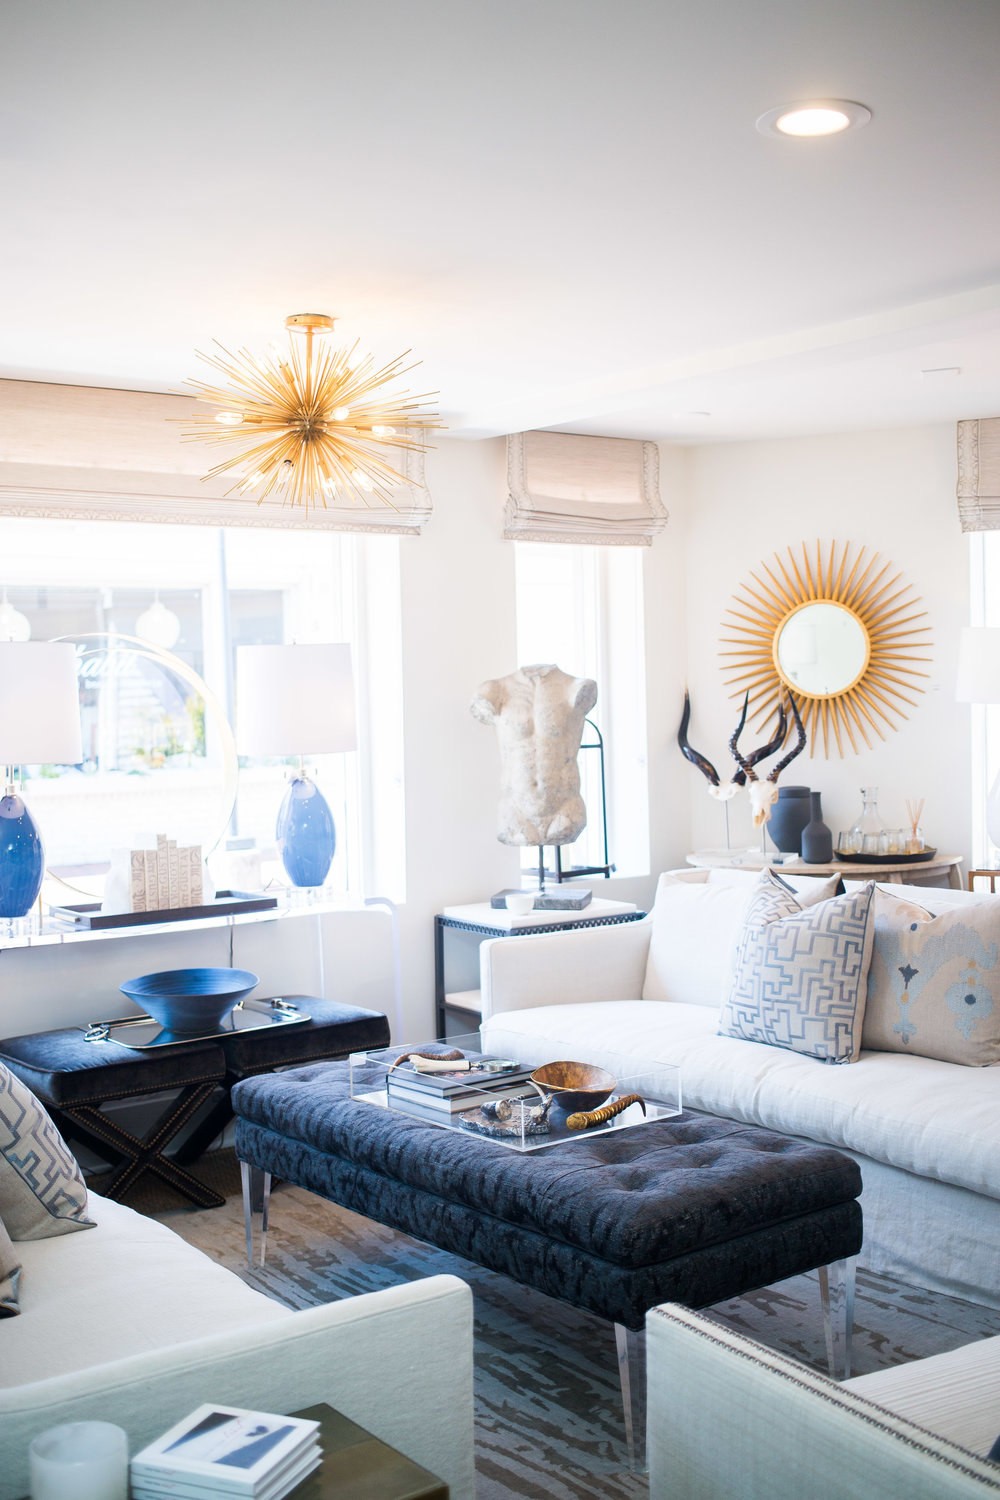 MEET PROVIDENCE INTERIORS — Living With Landyn